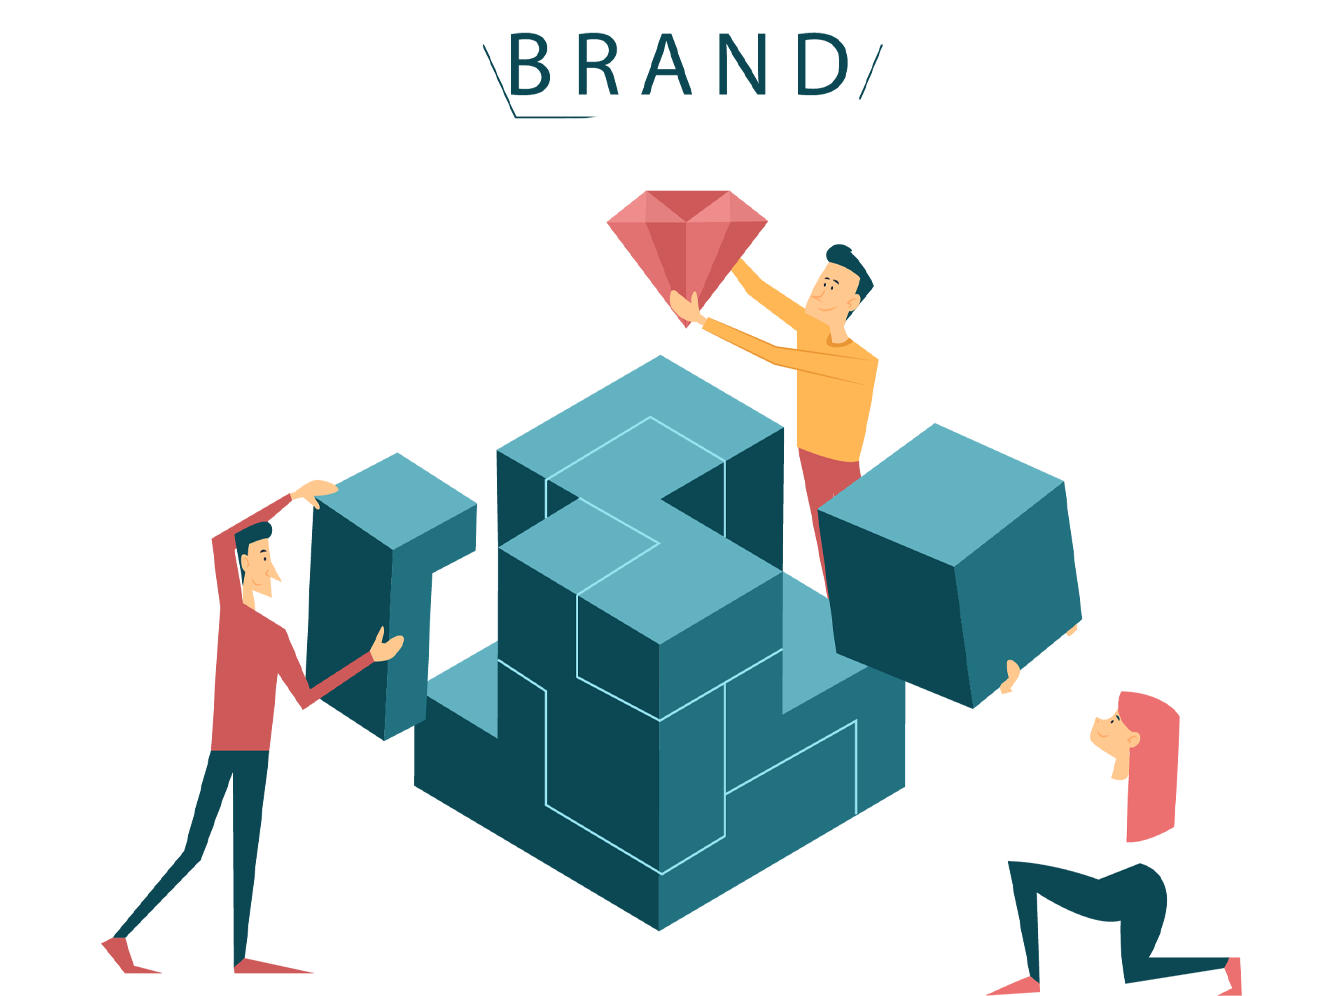 Brand identity services in gurgaon - 88gravity